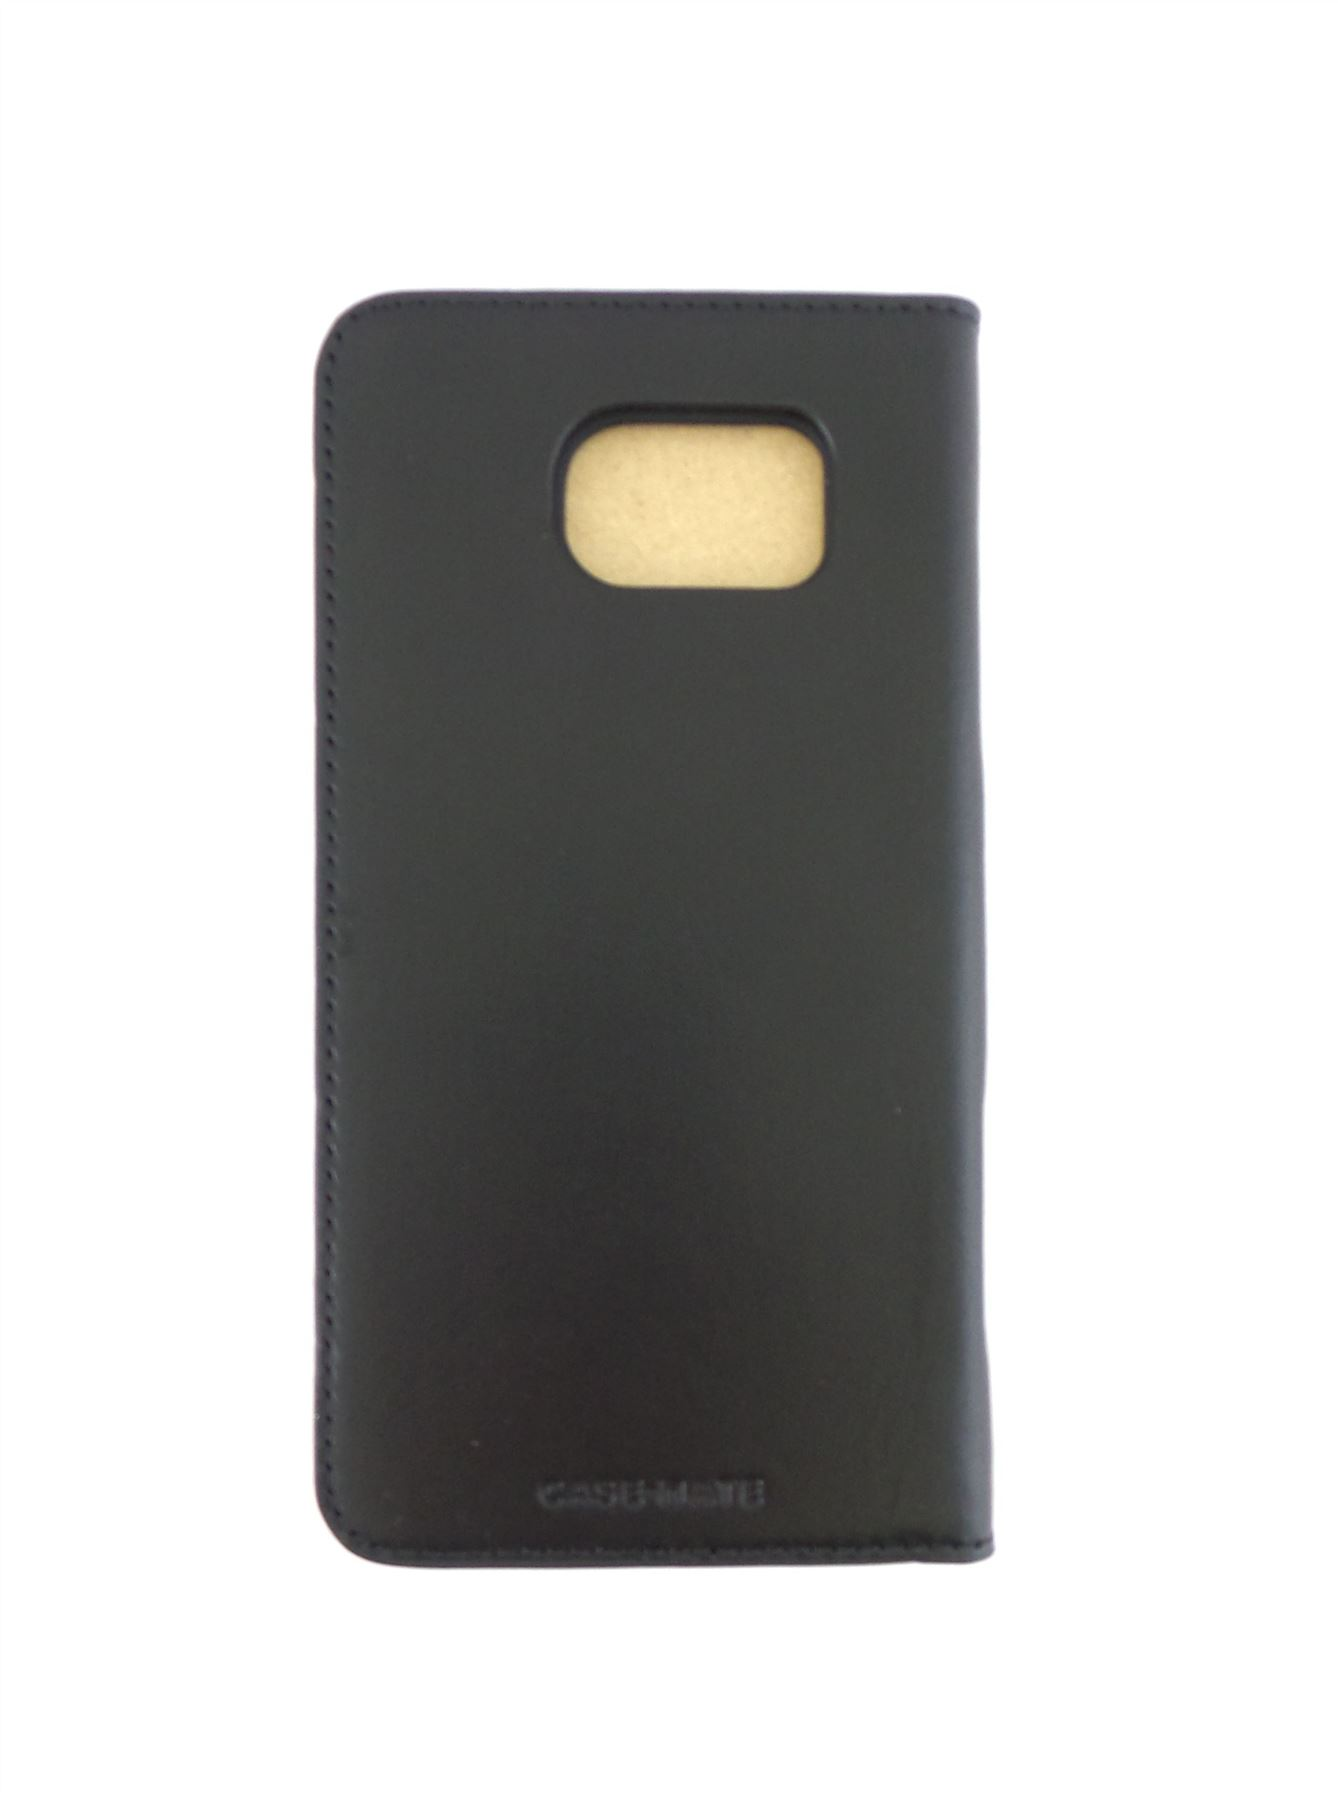 outlet store 3bda6 253c7 Details about Case-Mate Leather Wallet Folio for Samsung Galaxy S6 Black  CM032333